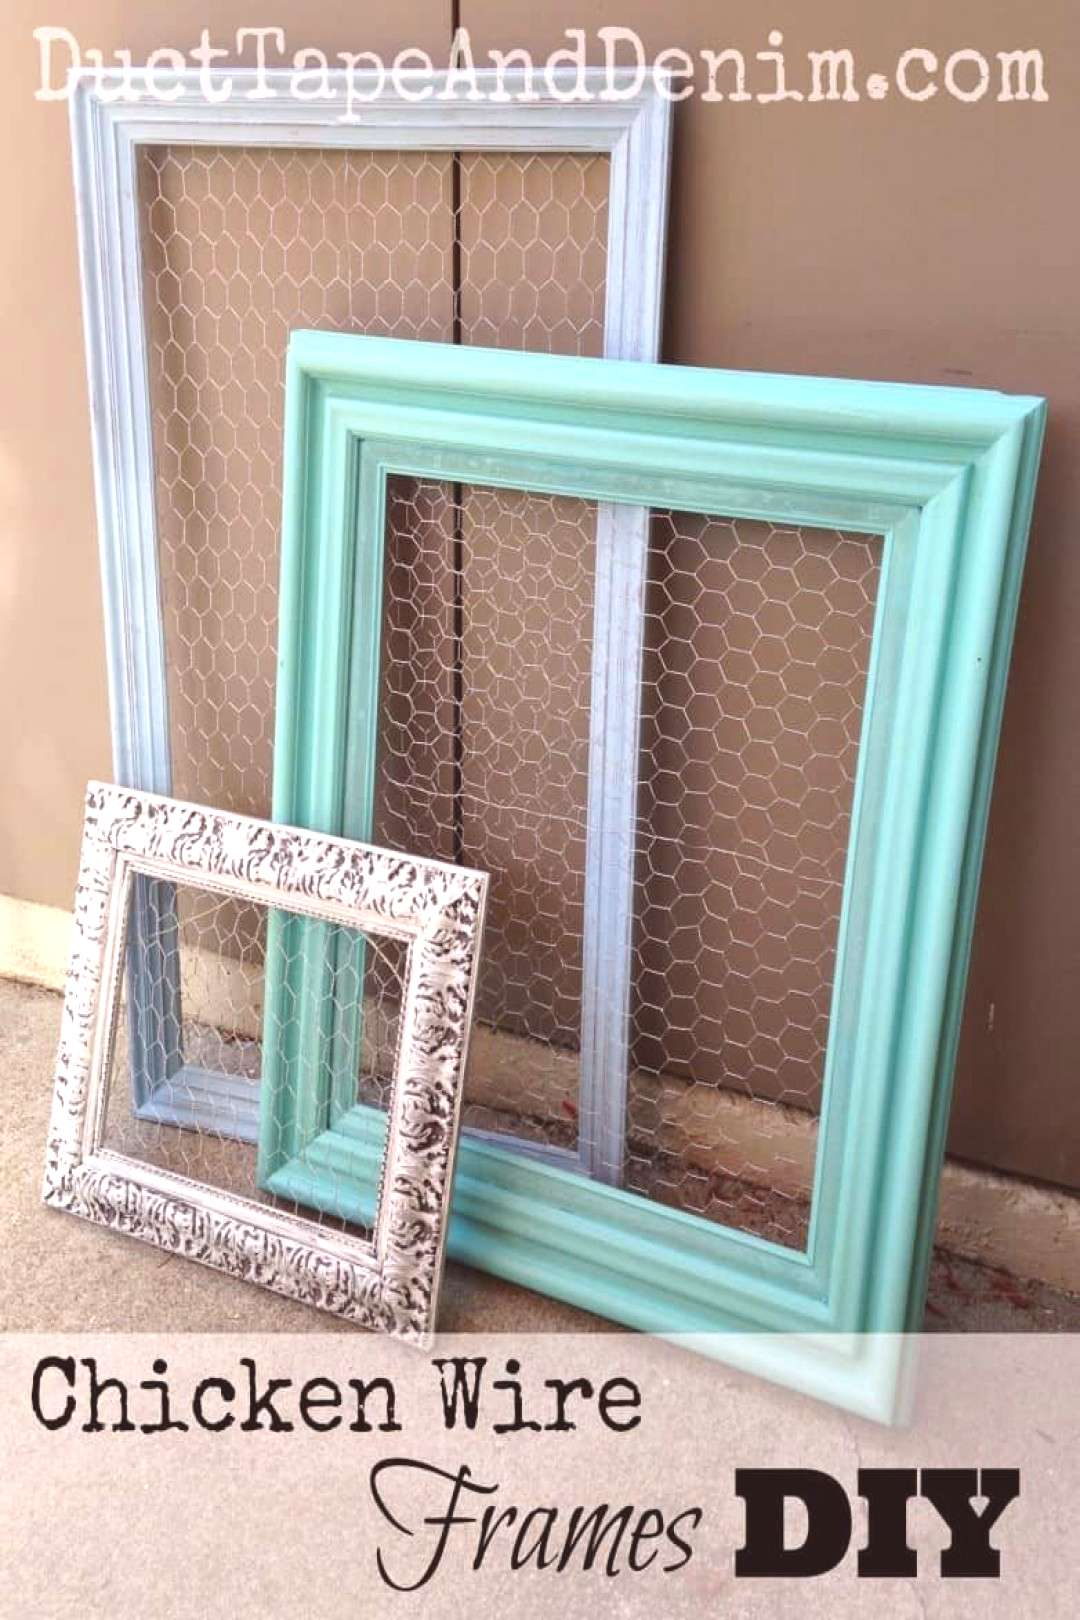 Chicken wire frames DIY. A quick easy way to display jewelry. |